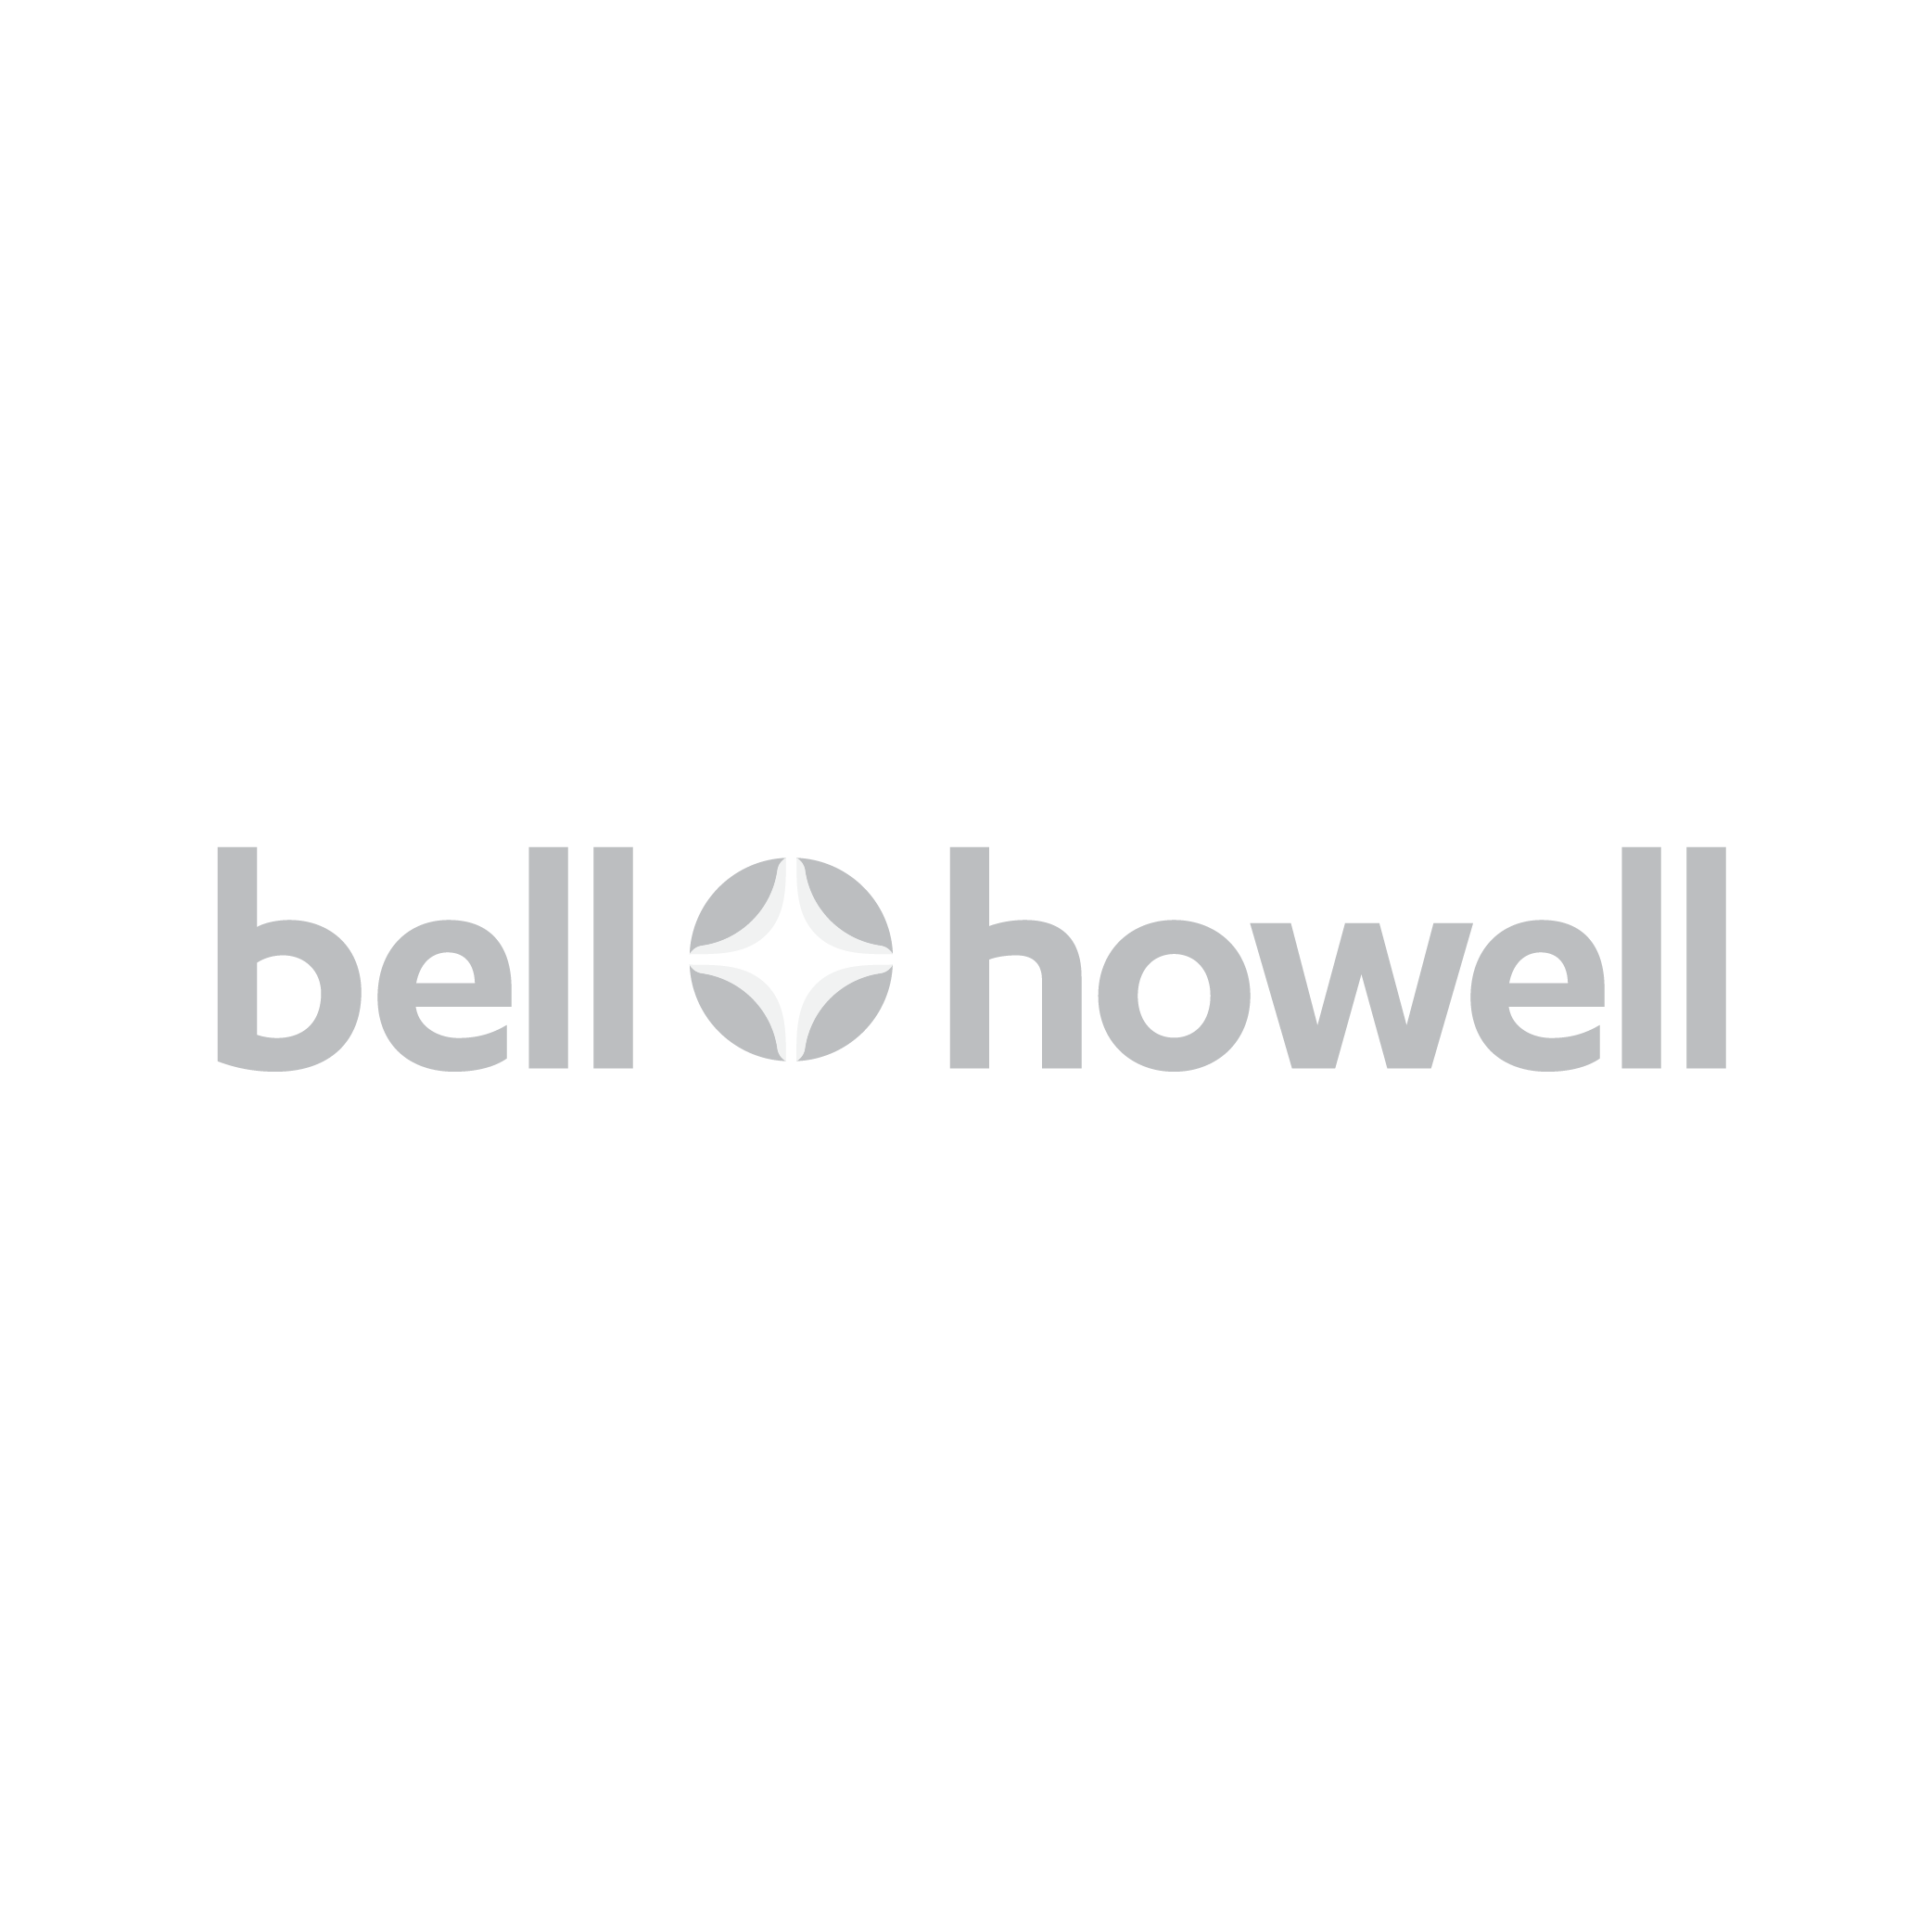 bellhowell_gray-01.png